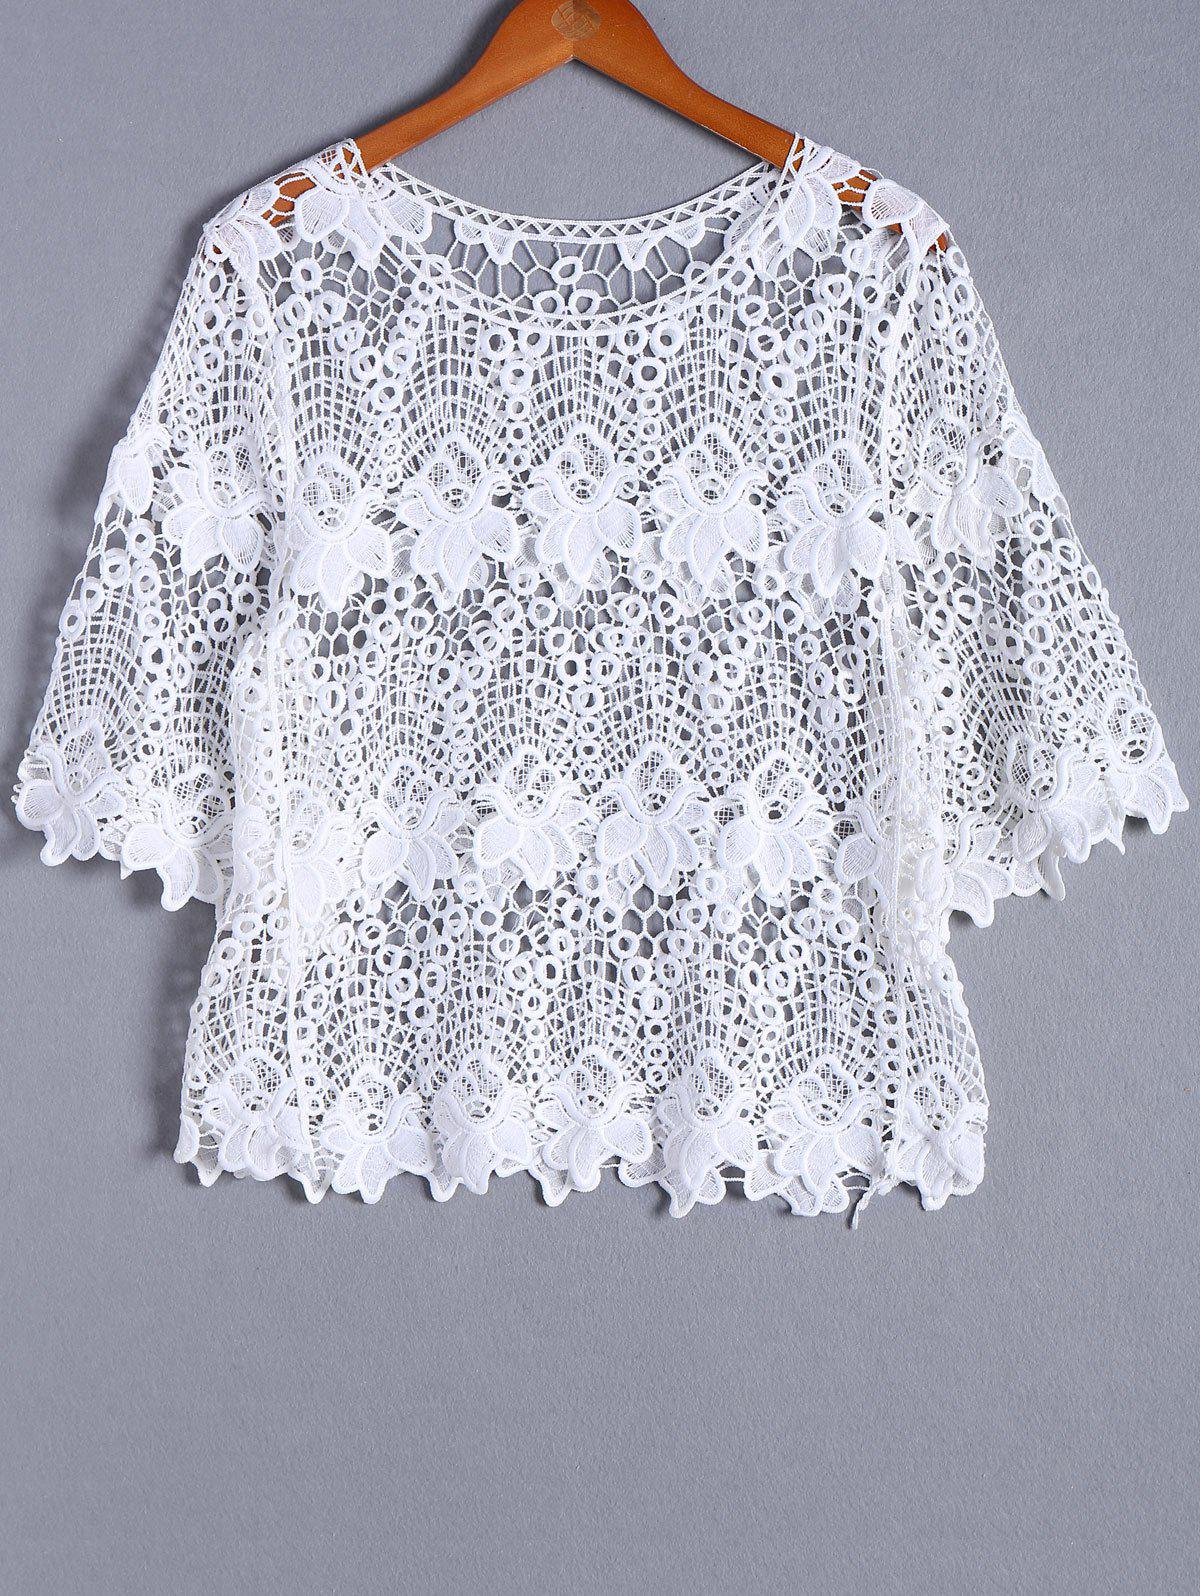 Casual Openwork Round Neck Bell Sleeve Blouse For Women - WHITE ONE SIZE(FIT SIZE XS TO M)